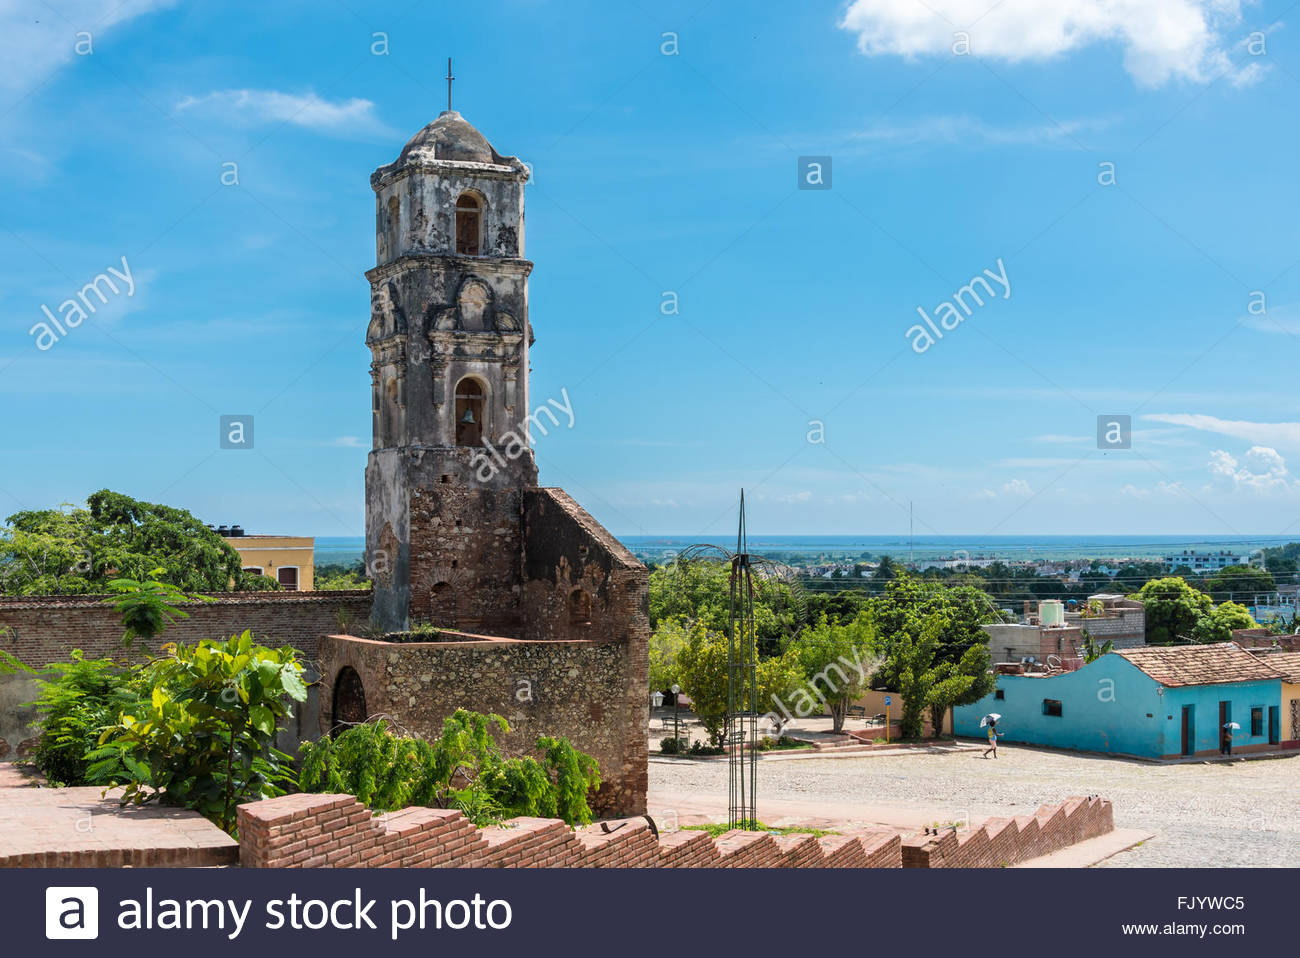 Santa Ana Catholic church ruins. The landmark dates from 1812 and is visited by thousands of tourists every year - Stock Image